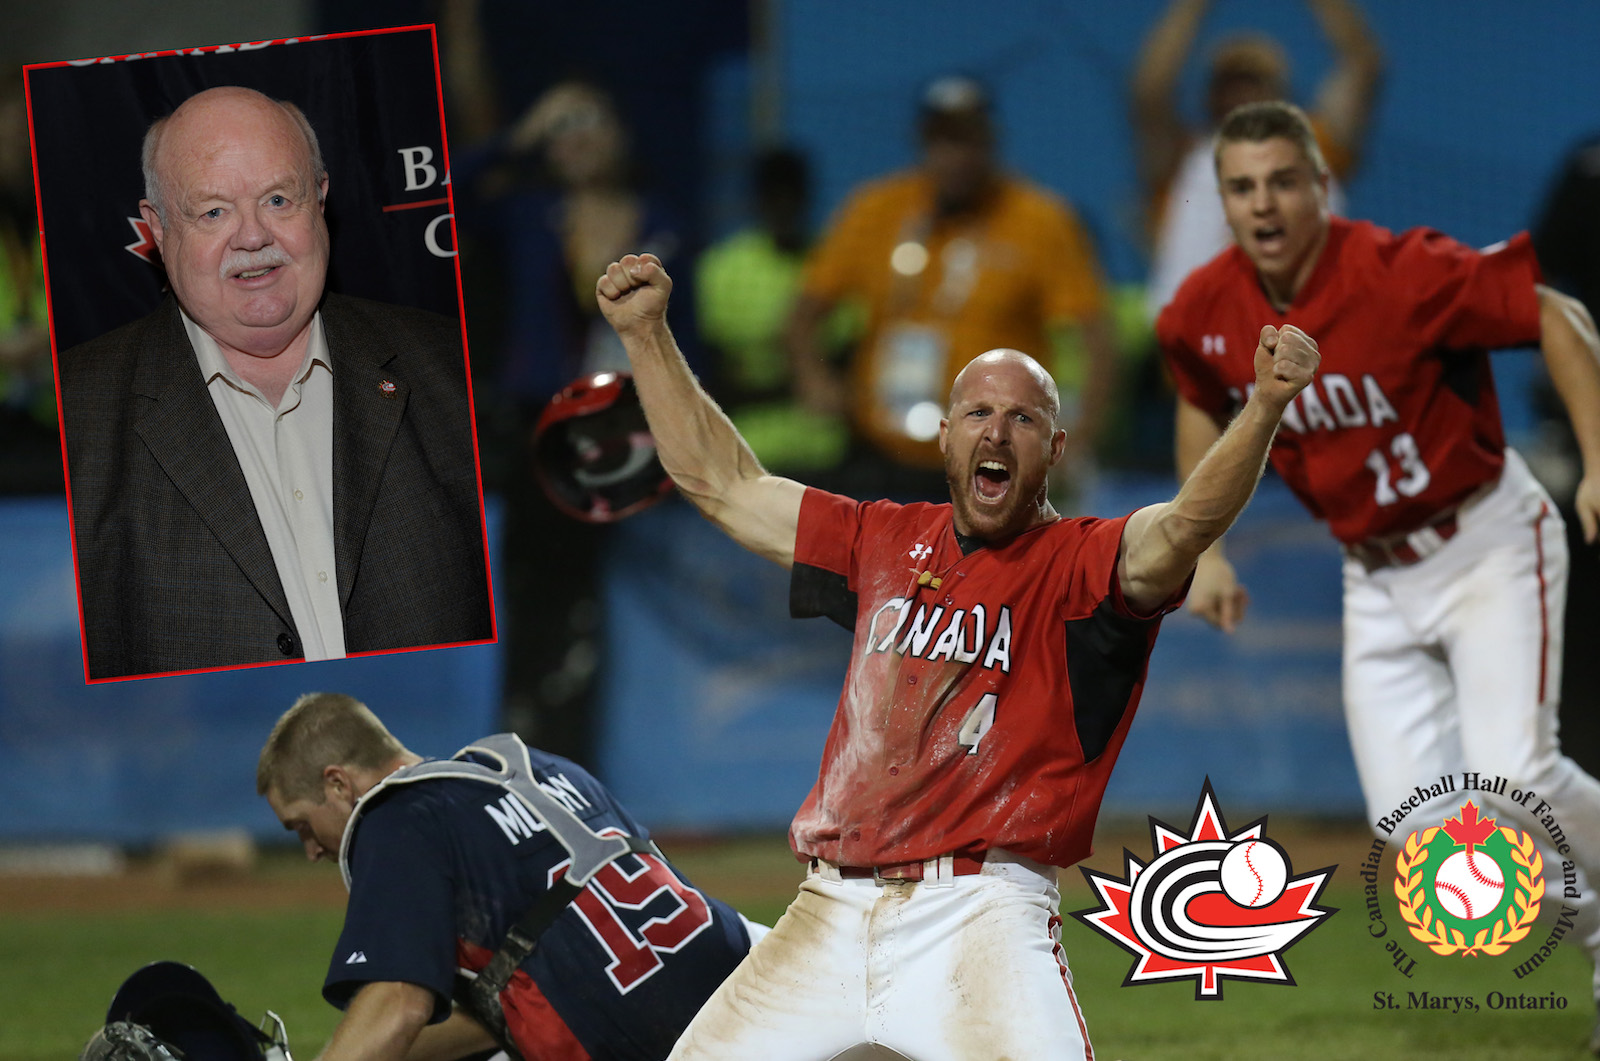 2015 Pam Am squad, Ray Carter to be inducted into Canadian Baseball Hall of Fame